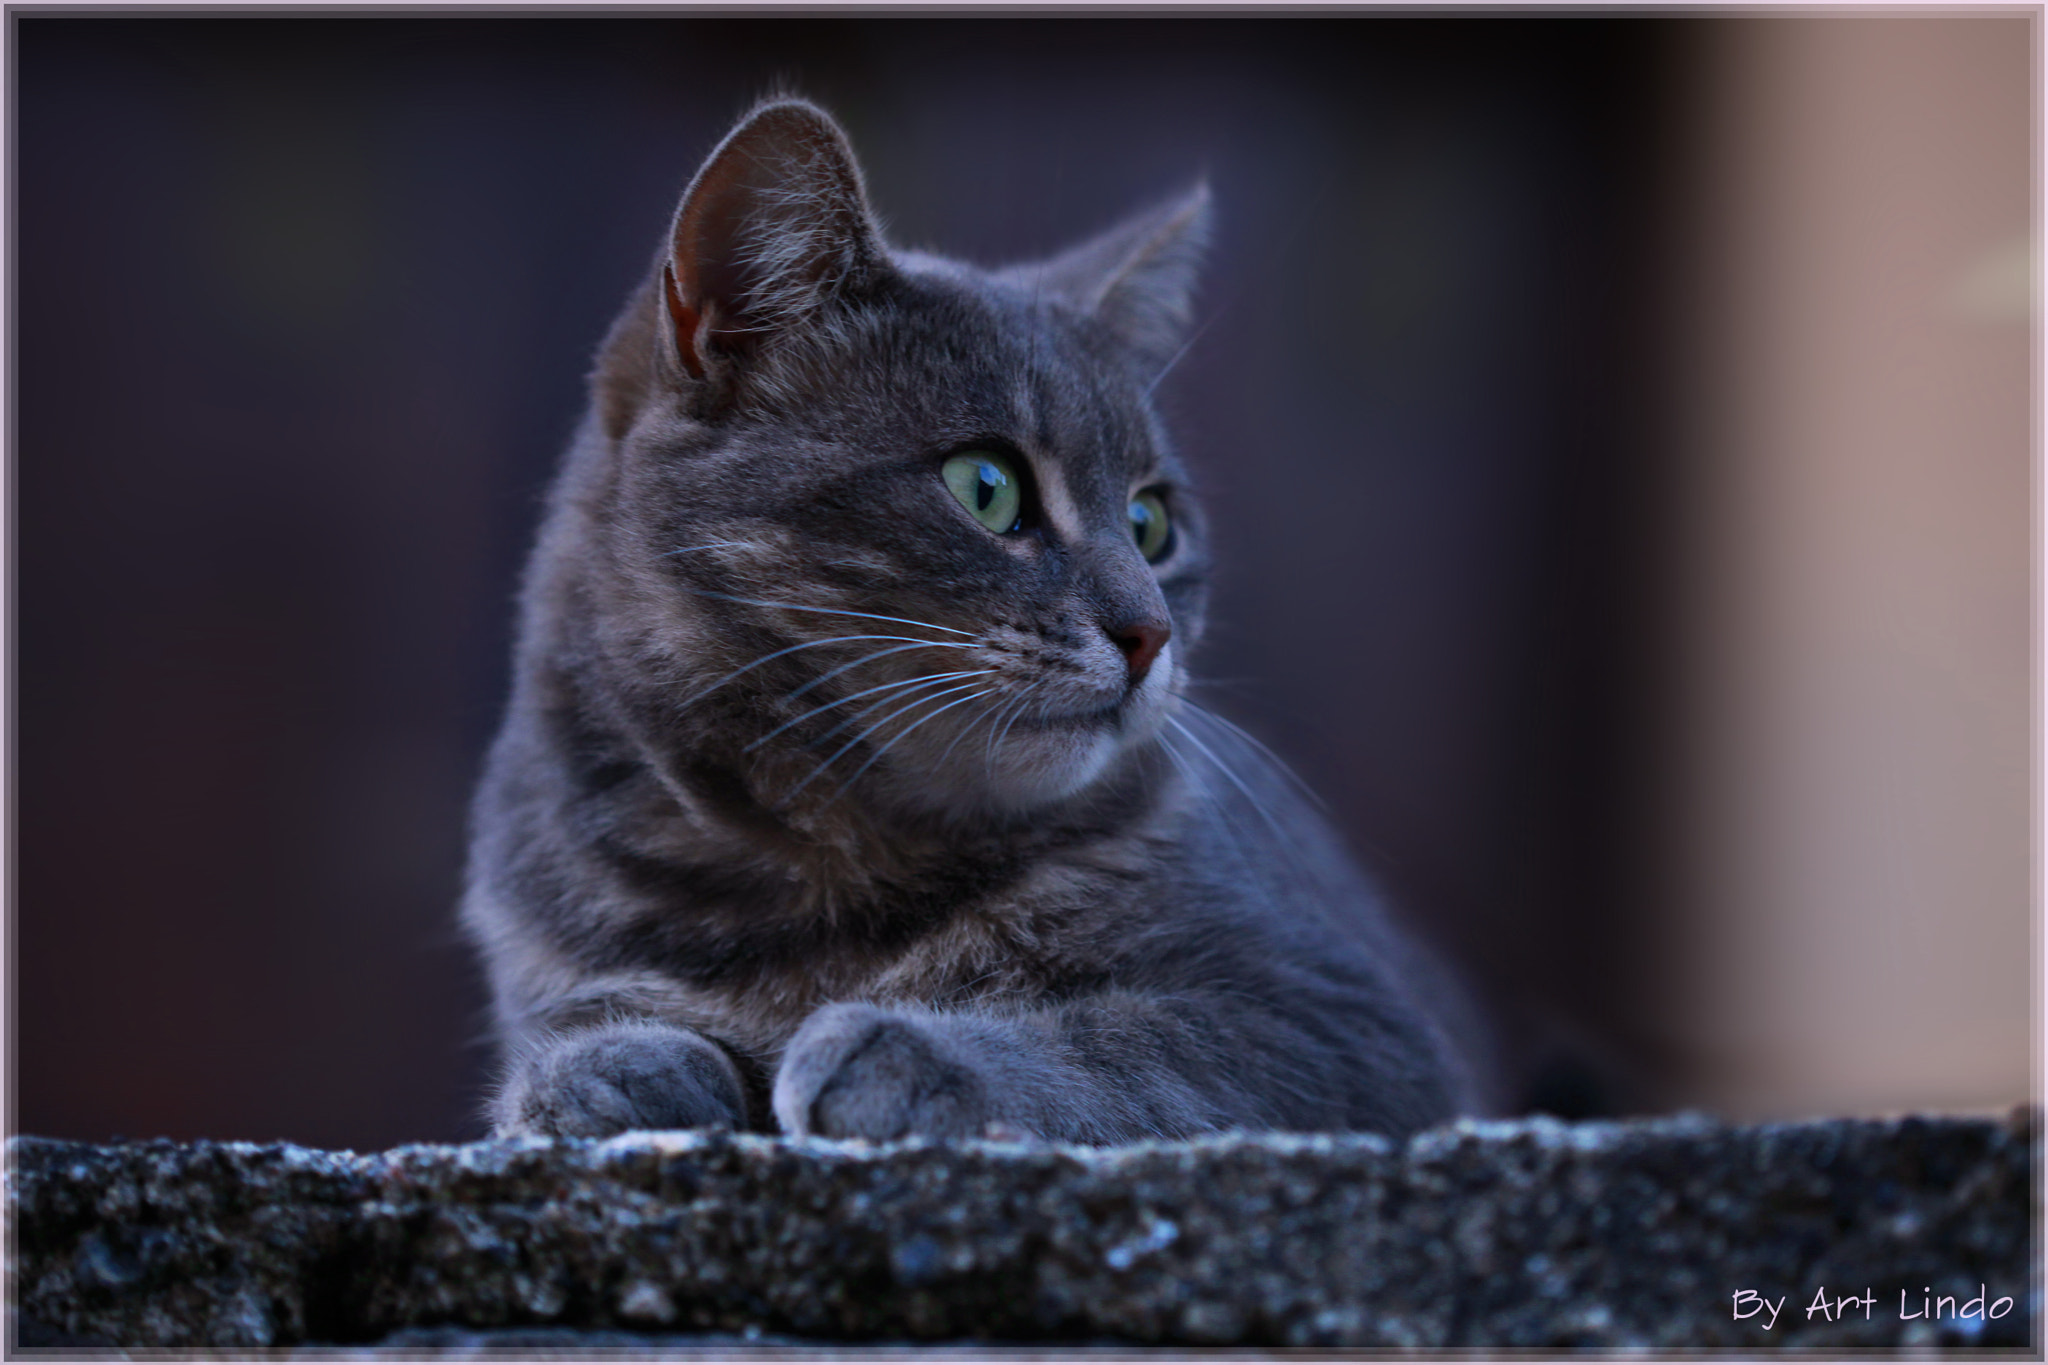 Photograph Le chat du voisin by Art Lindo on 500px